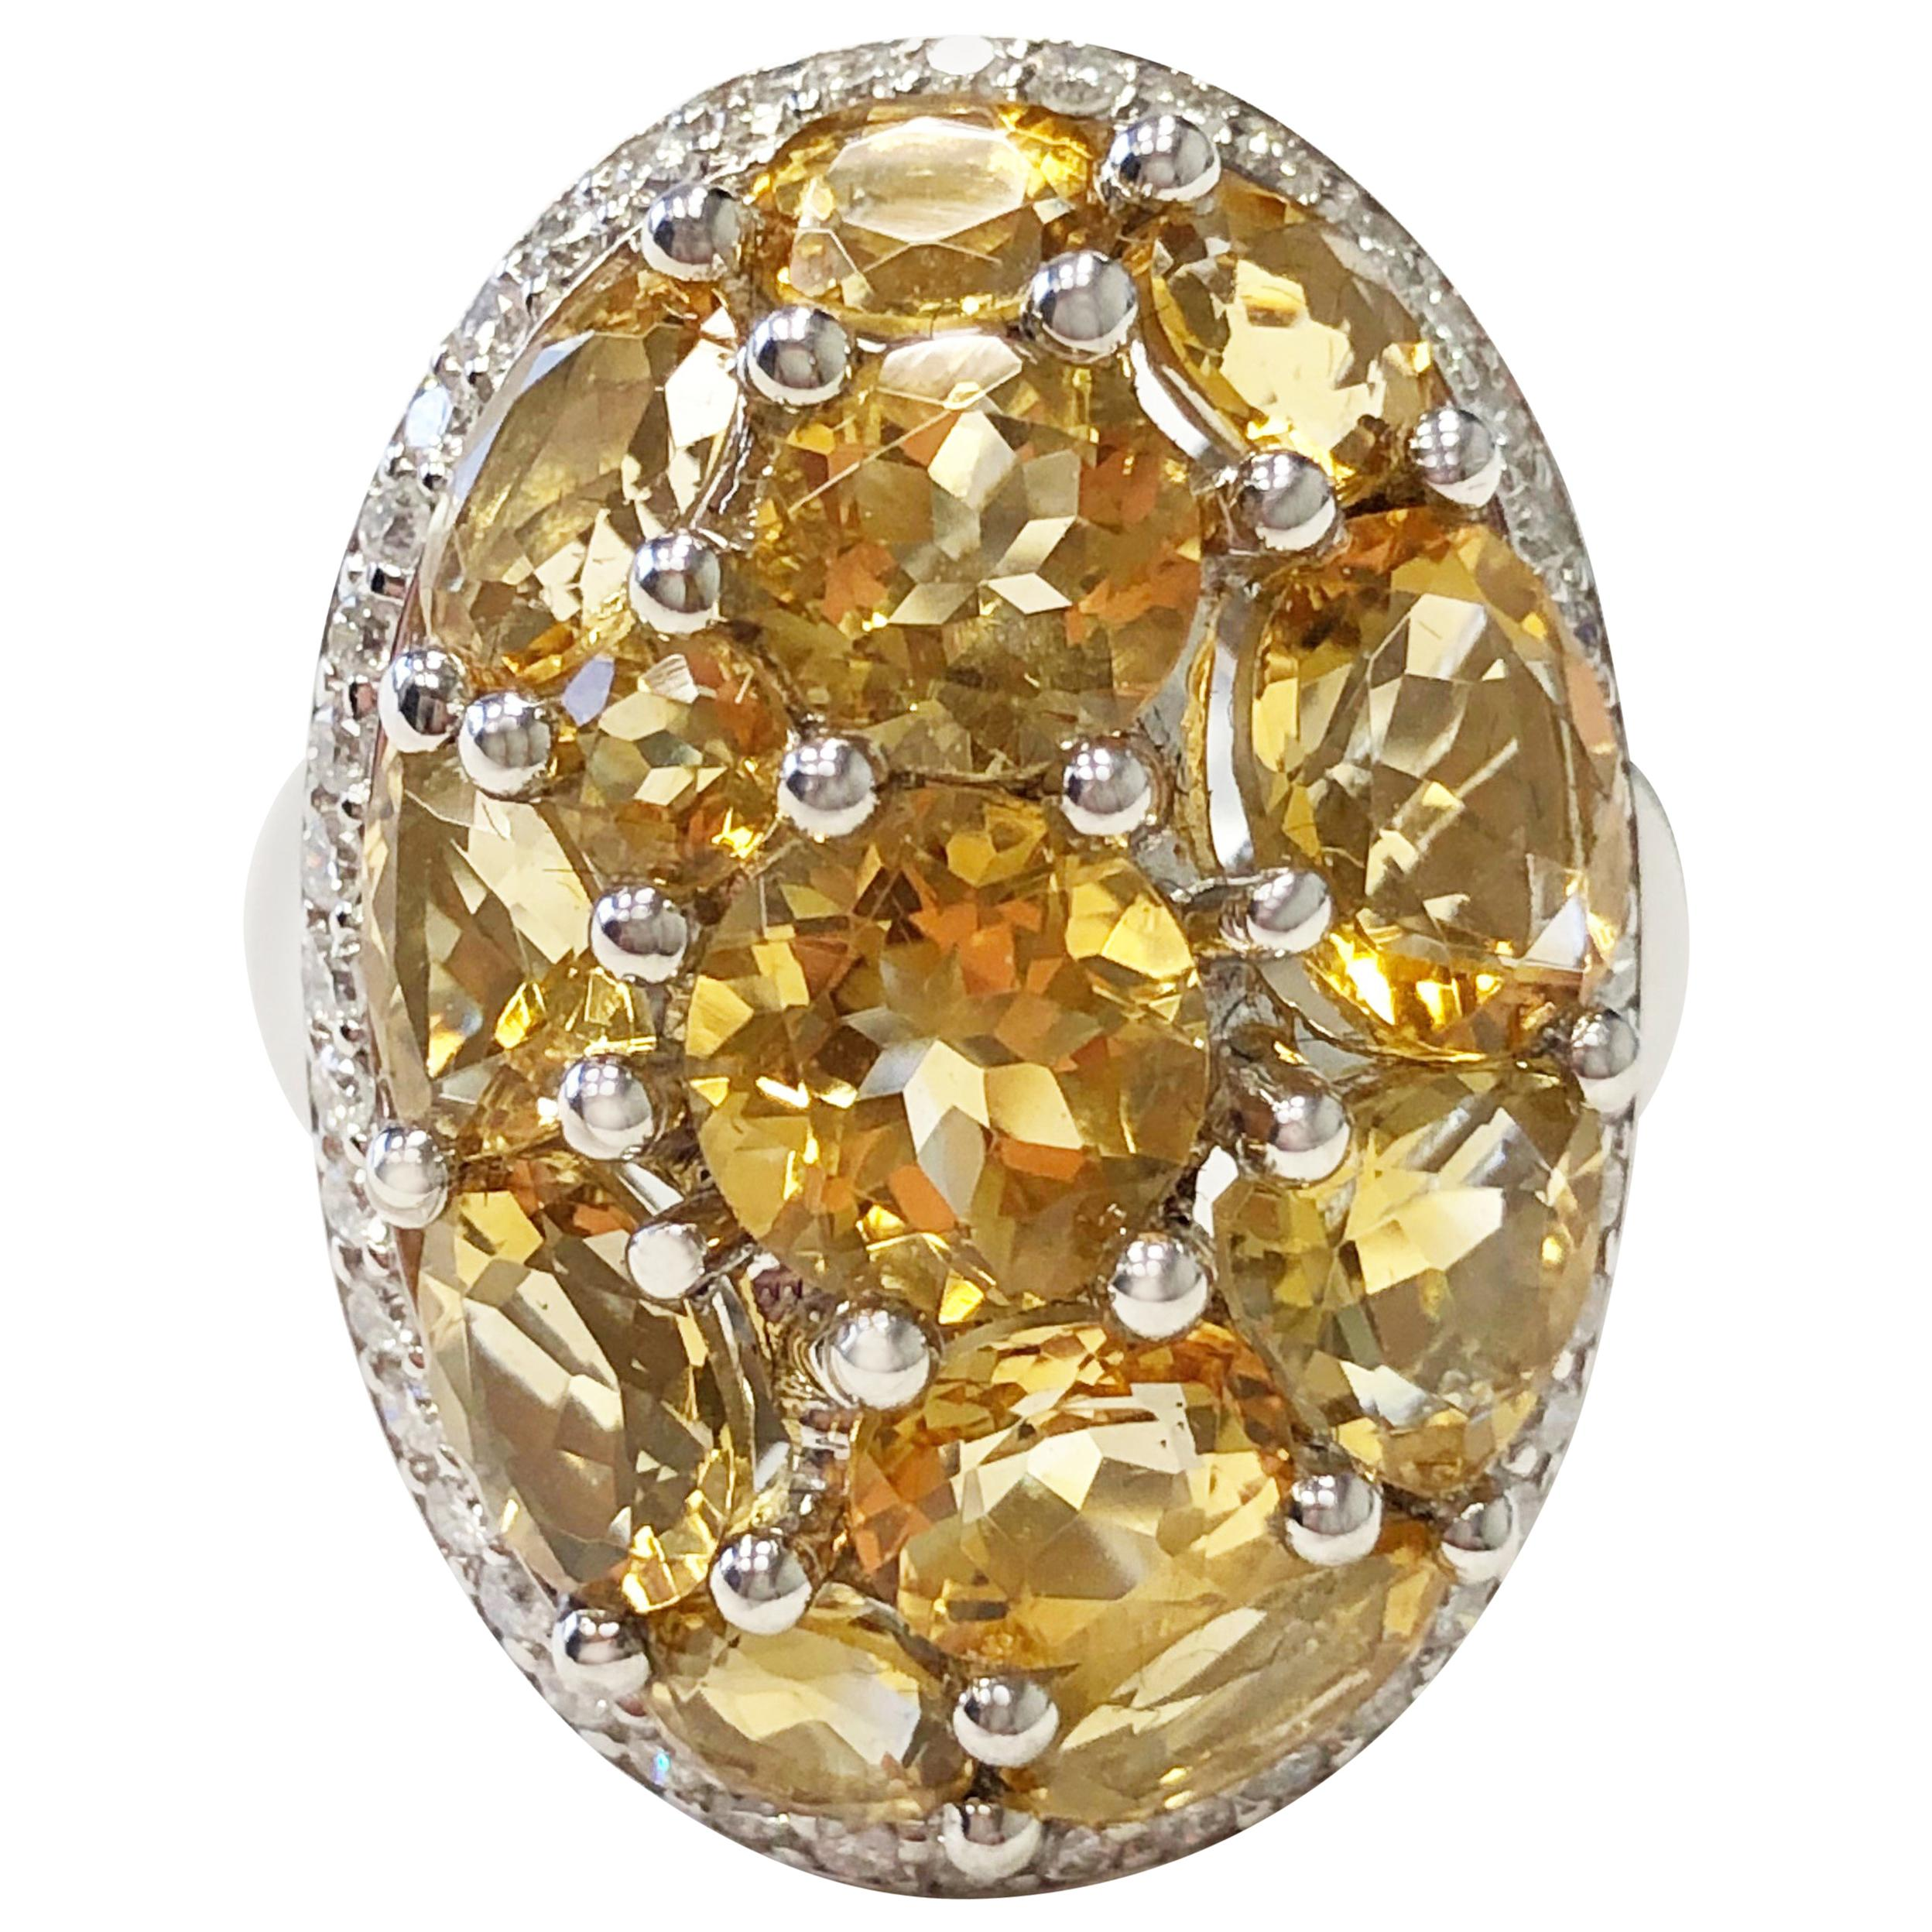 Citrine Oval and White Diamond Cocktail Ring in 18 Karat White Gold